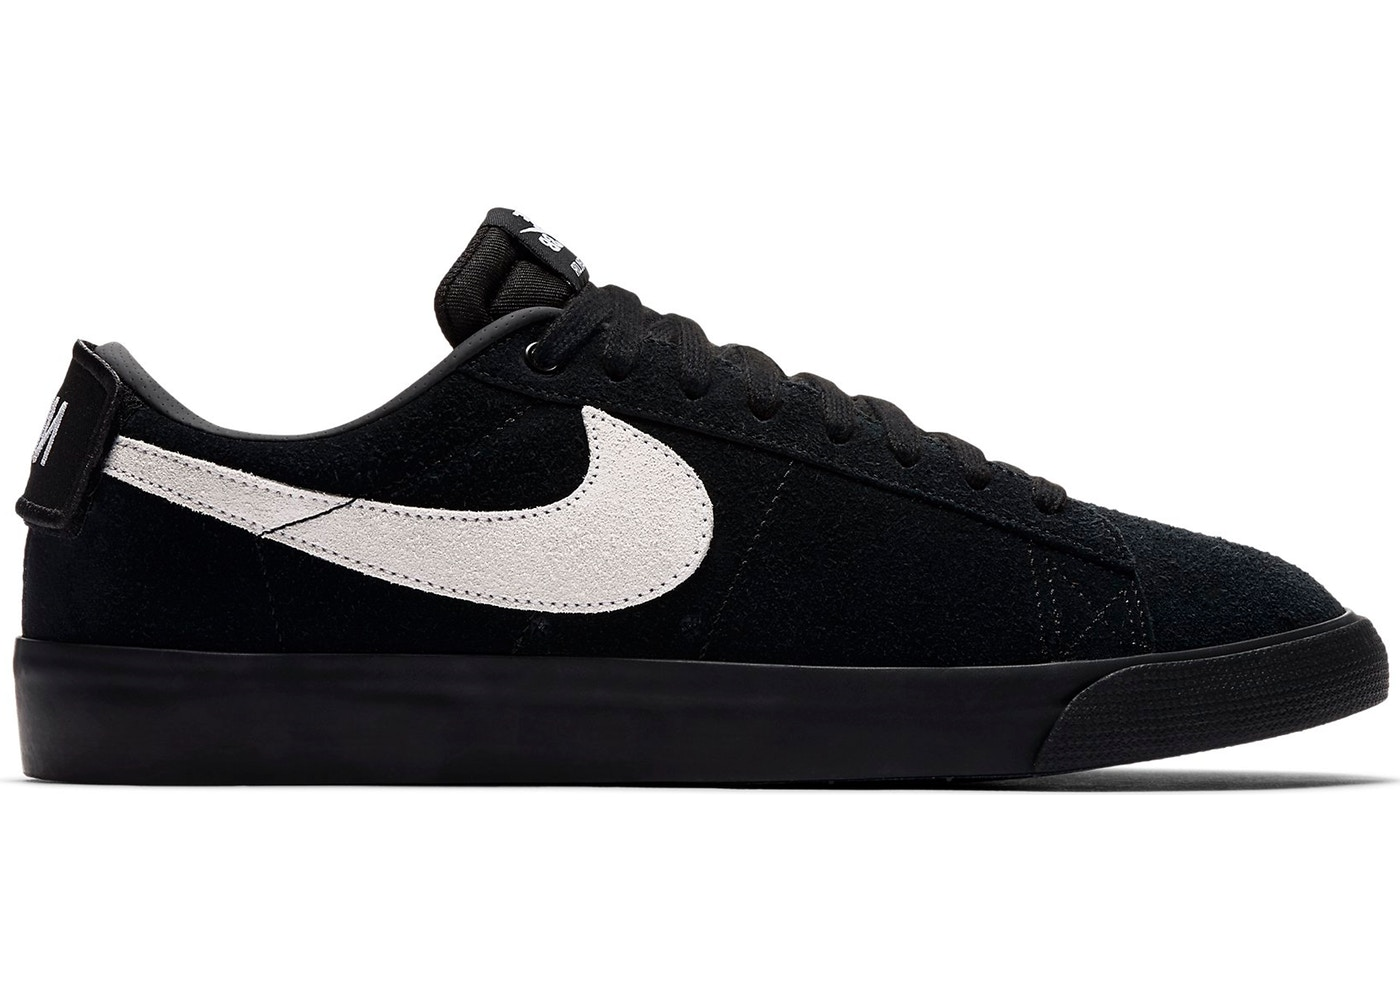 new style 4ba43 613ae Nike SB Blazer Zoom Low GT Black White - 943849-010